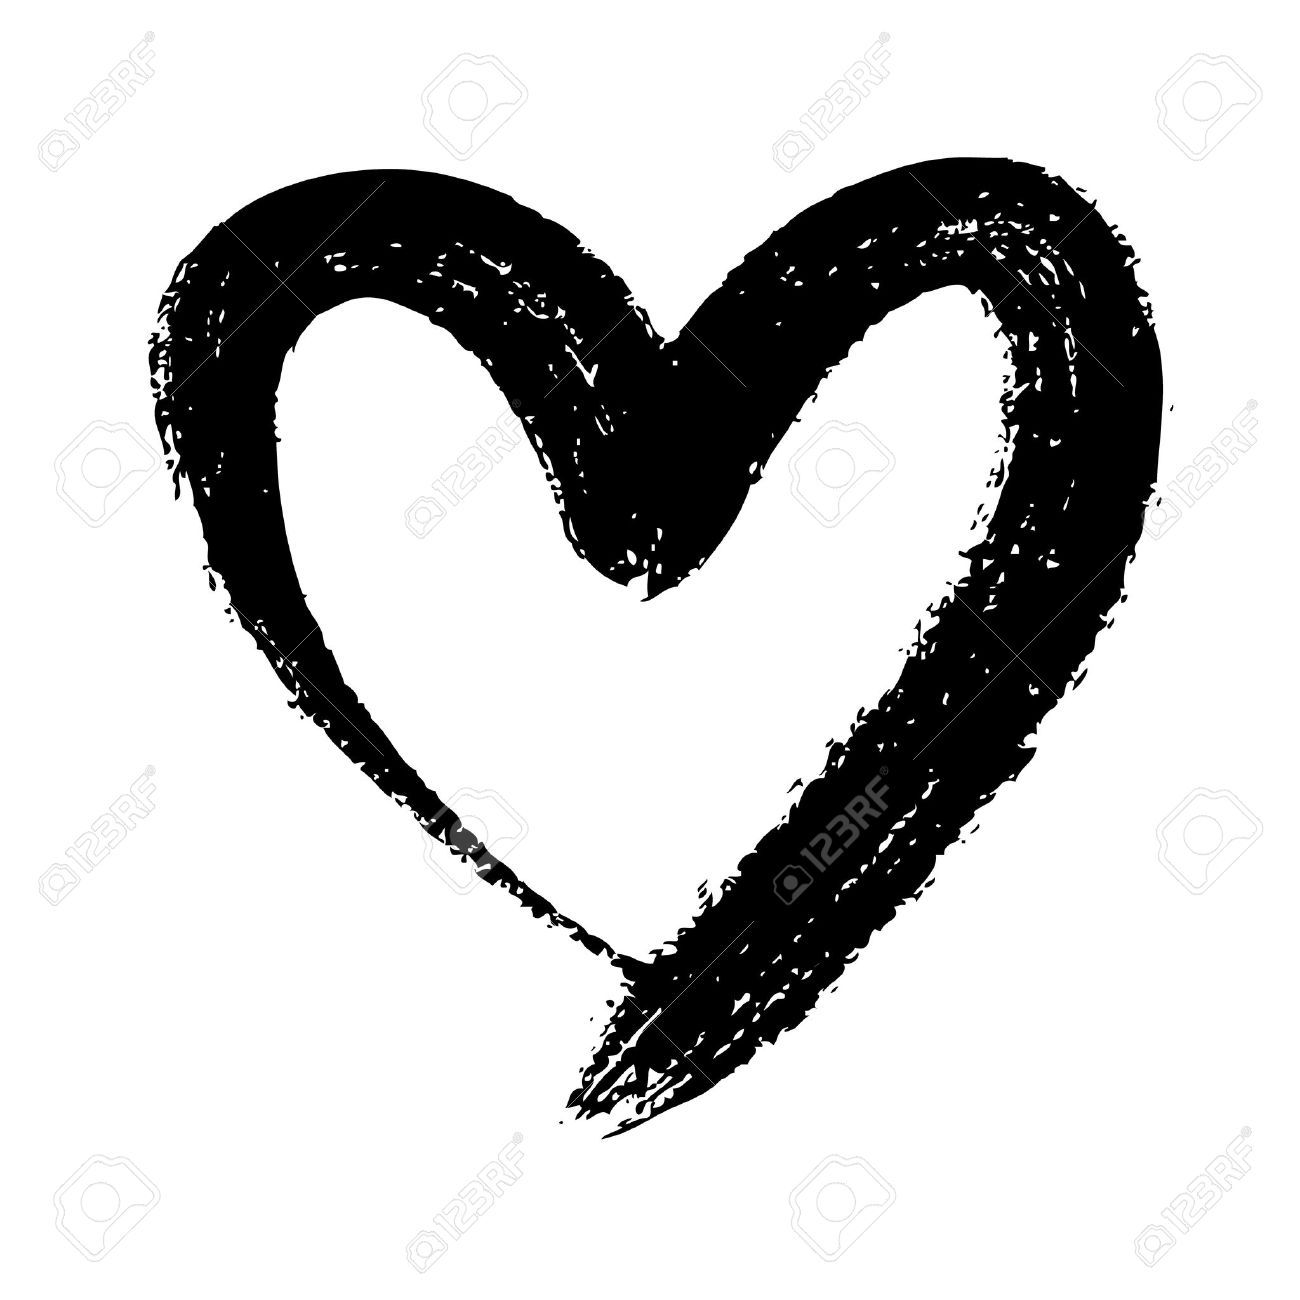 hight resolution of doodle hand drawn heart shaped on white background royalty free